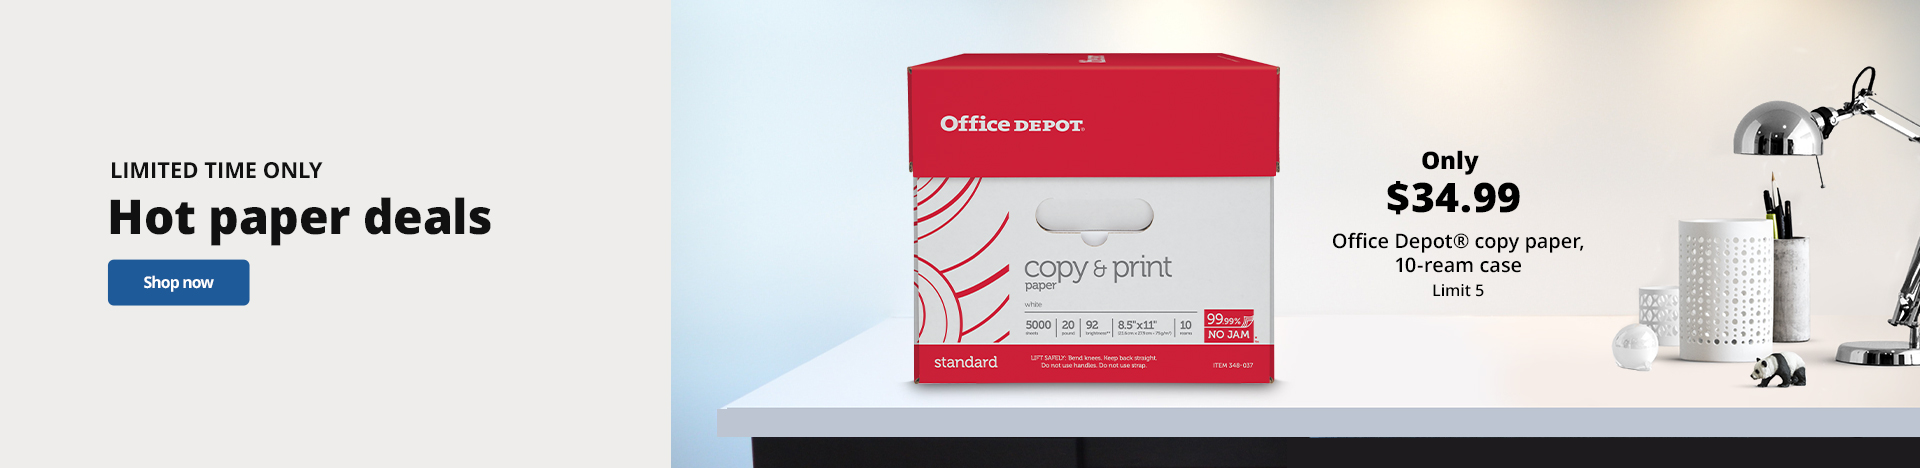 Only $34.99 Office Depot Brand Copy Paper - 10 Ream Case